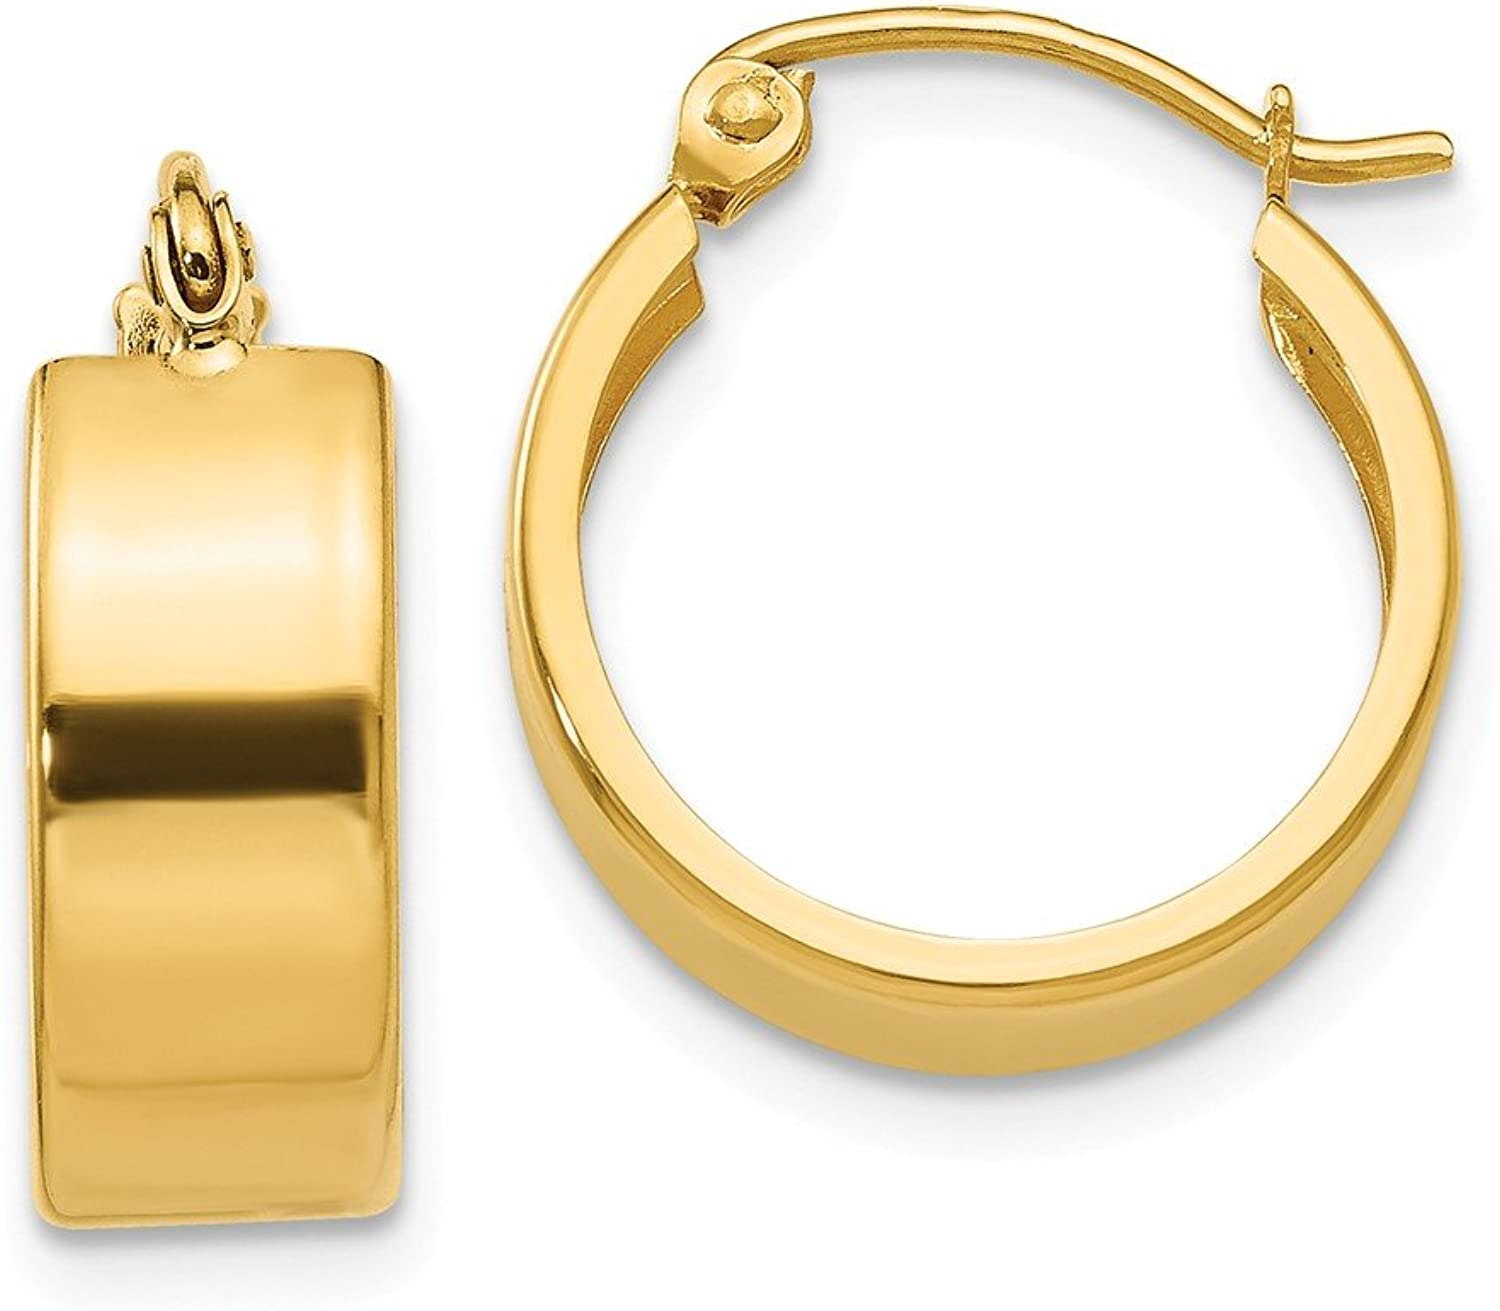 Beautiful Yellow gold 14K Yellowgold 14K Small Hoop Earrings